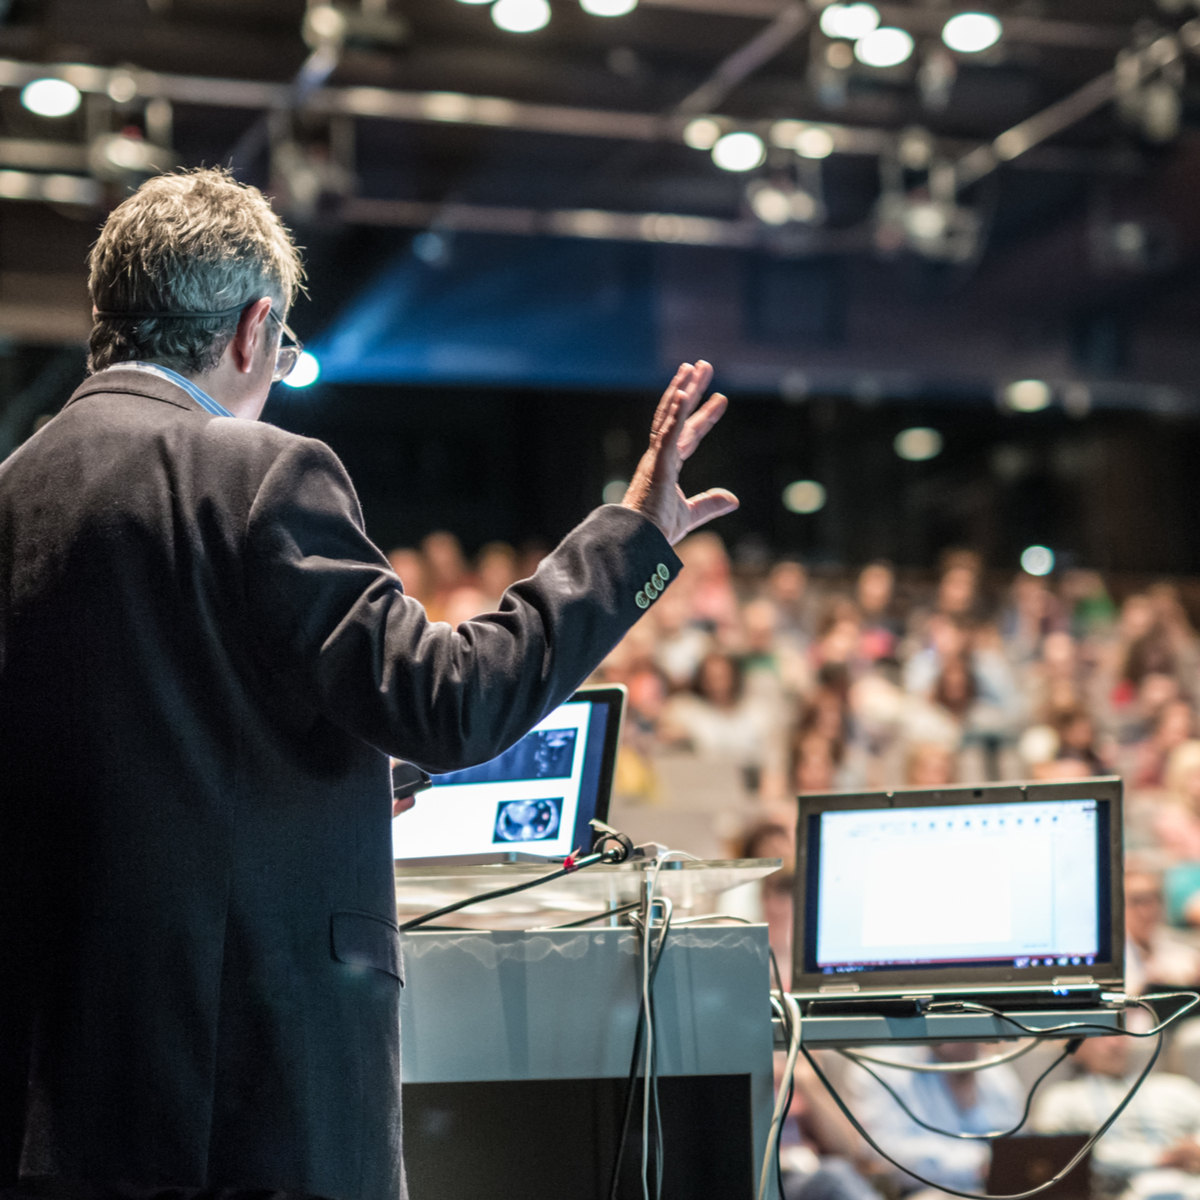 Webinars and Conferences